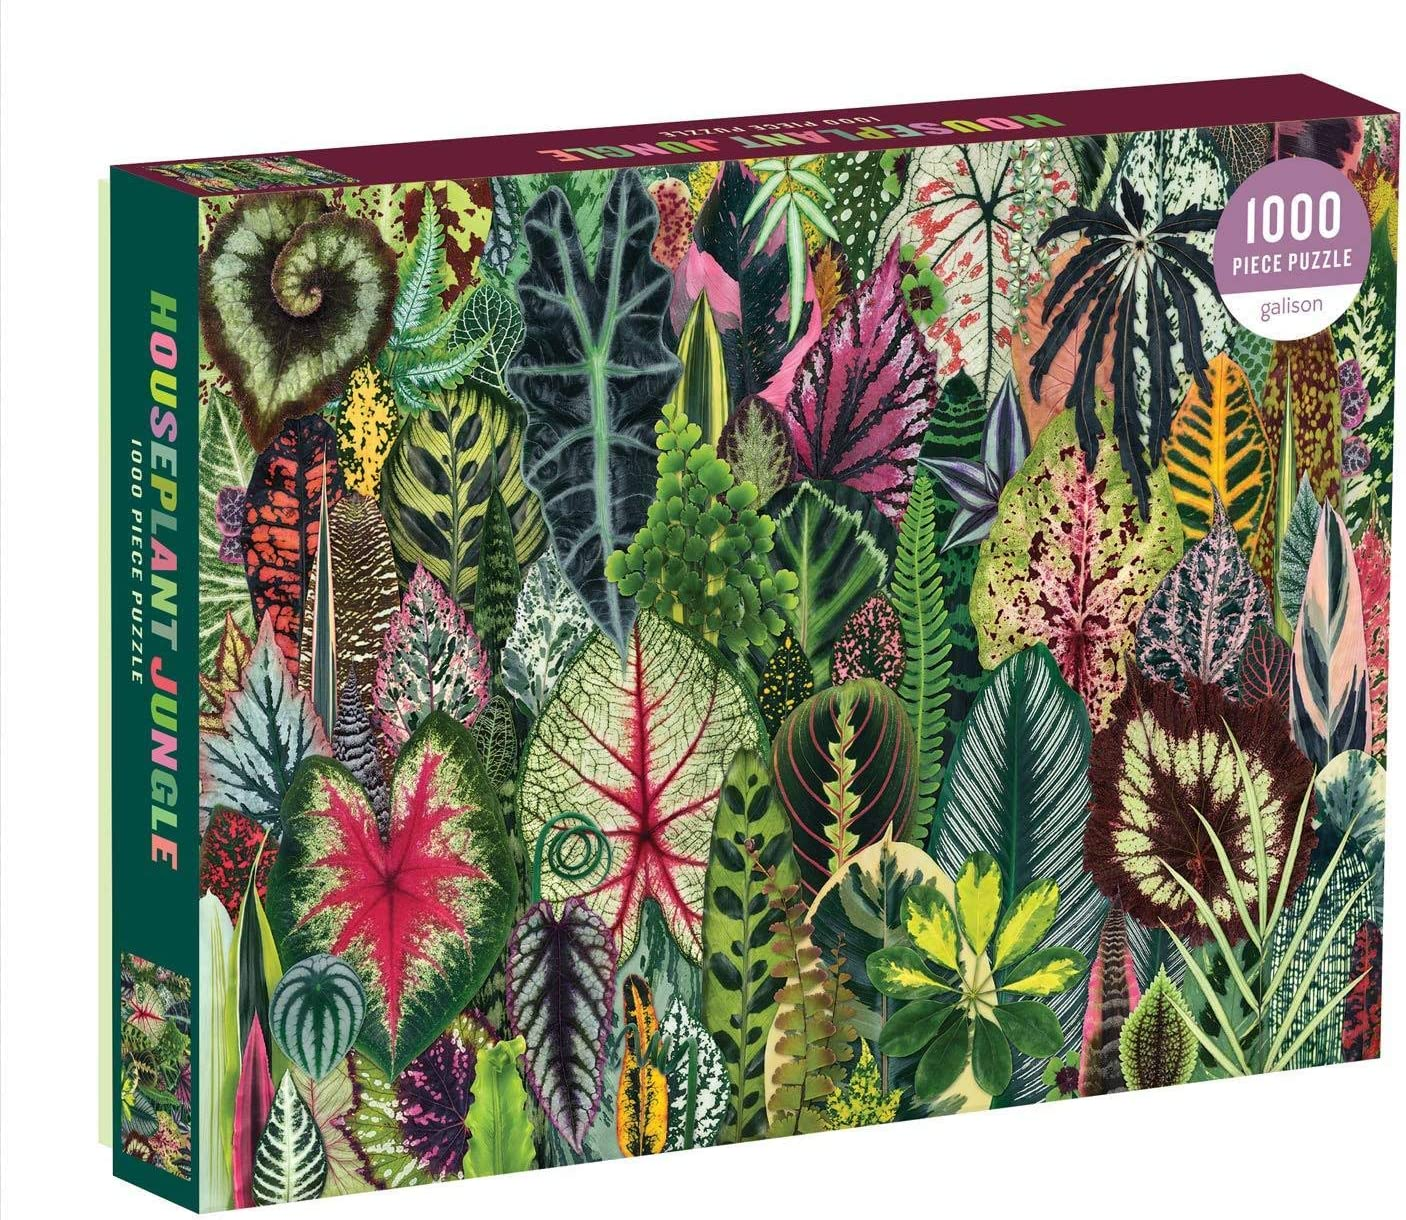 Amazon.com: Galison Houseplant Jungle 1000 Piece Jigsaw Puzzle for Adults – Plant  Jigsaw Puzzle with Mix of Succulents & Other Household Plants – Fun Indoor  Activity, Multicolor: Toys & Games